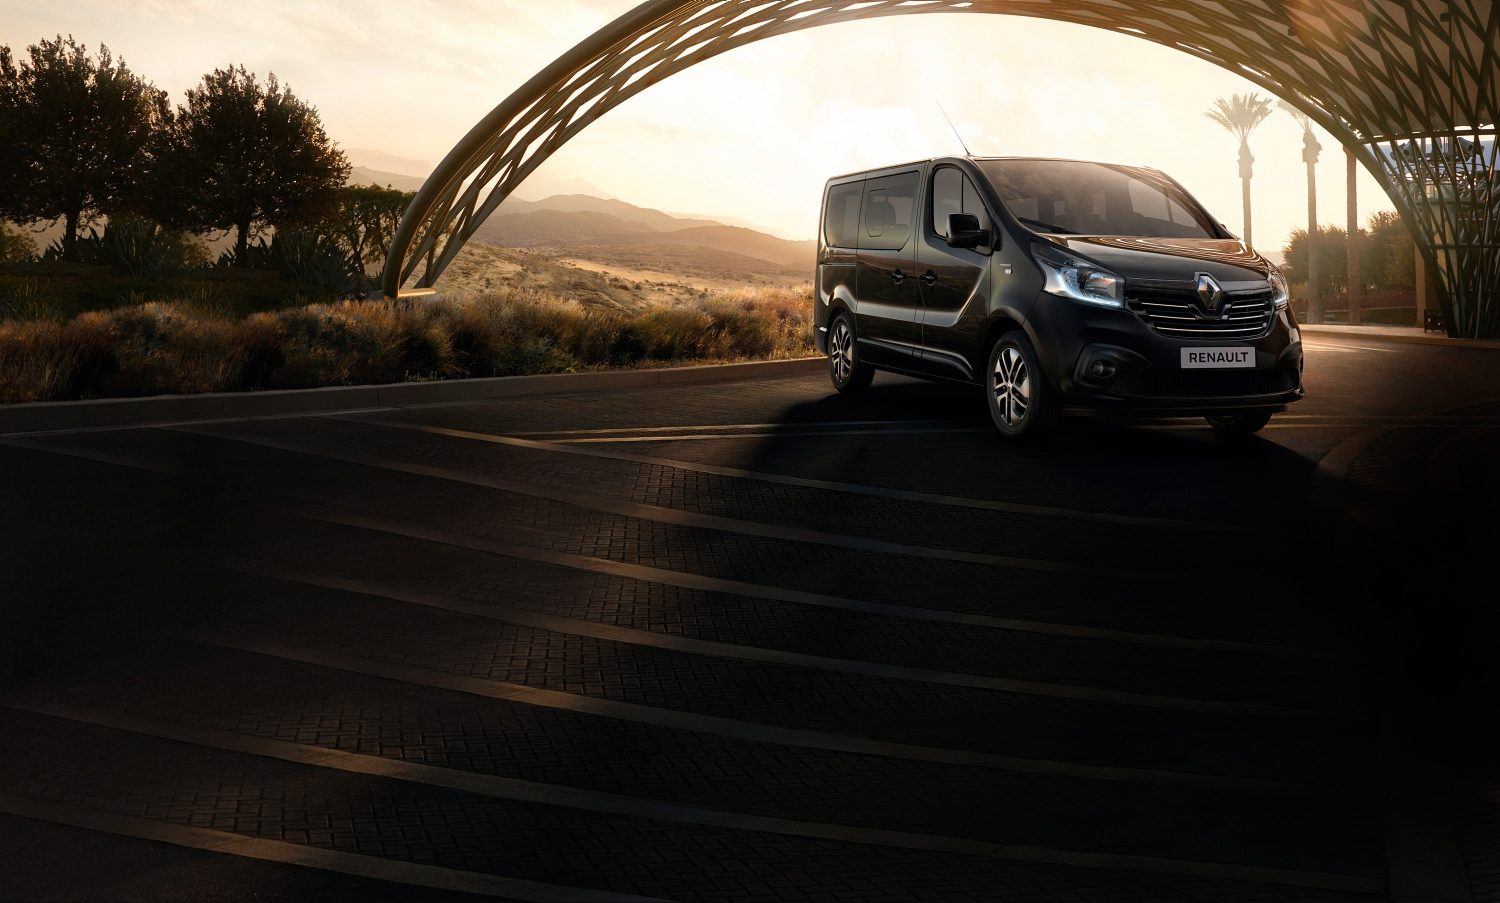 renault-trafic-spaceclass-beautyshot-desktop.jpg.ximg.l_full_m.smart.jpg